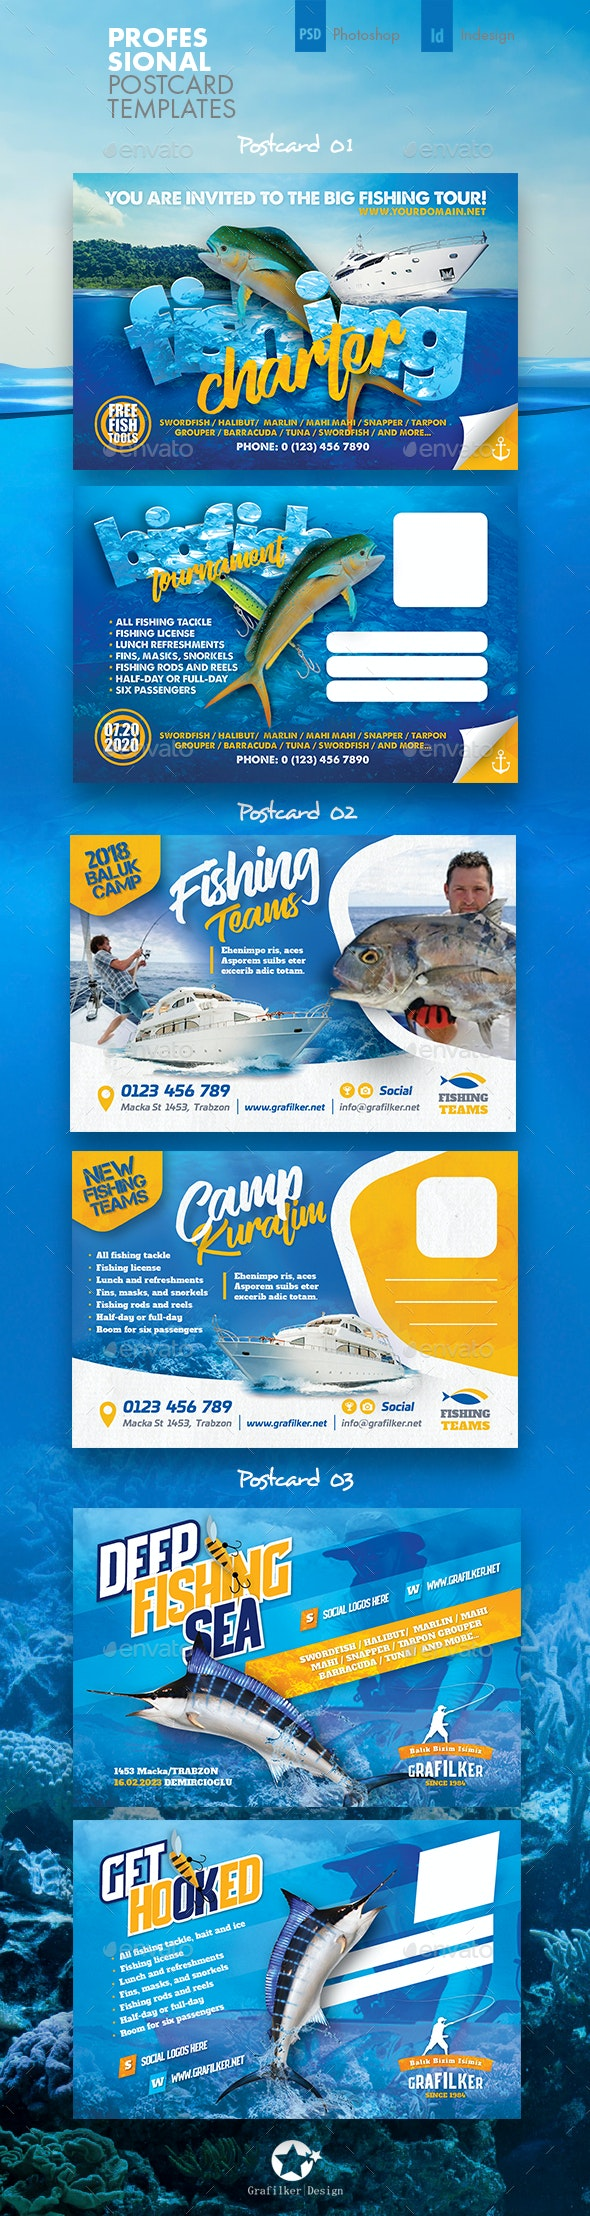 Fishing Tour Postcard Bundle Templates - Cards & Invites Print Templates